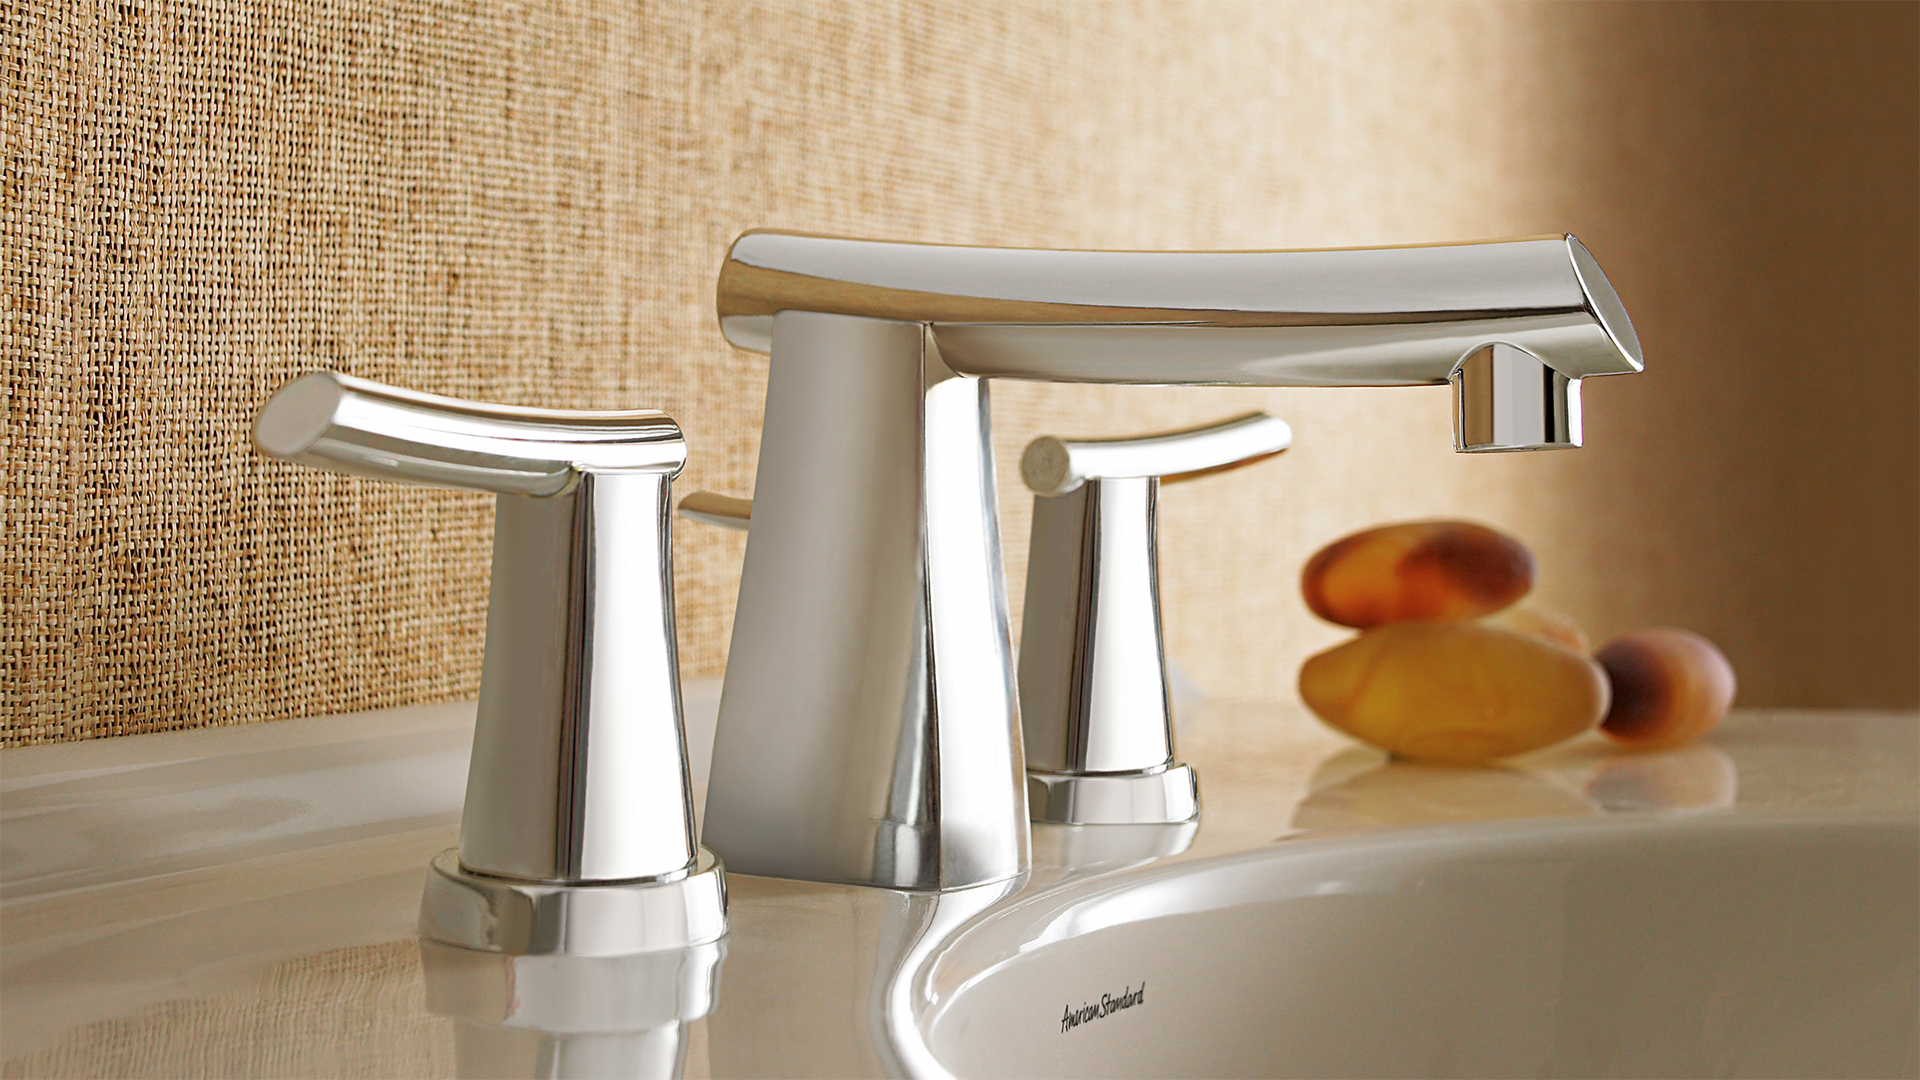 priority_designs_faucet_design_and_engineering_005